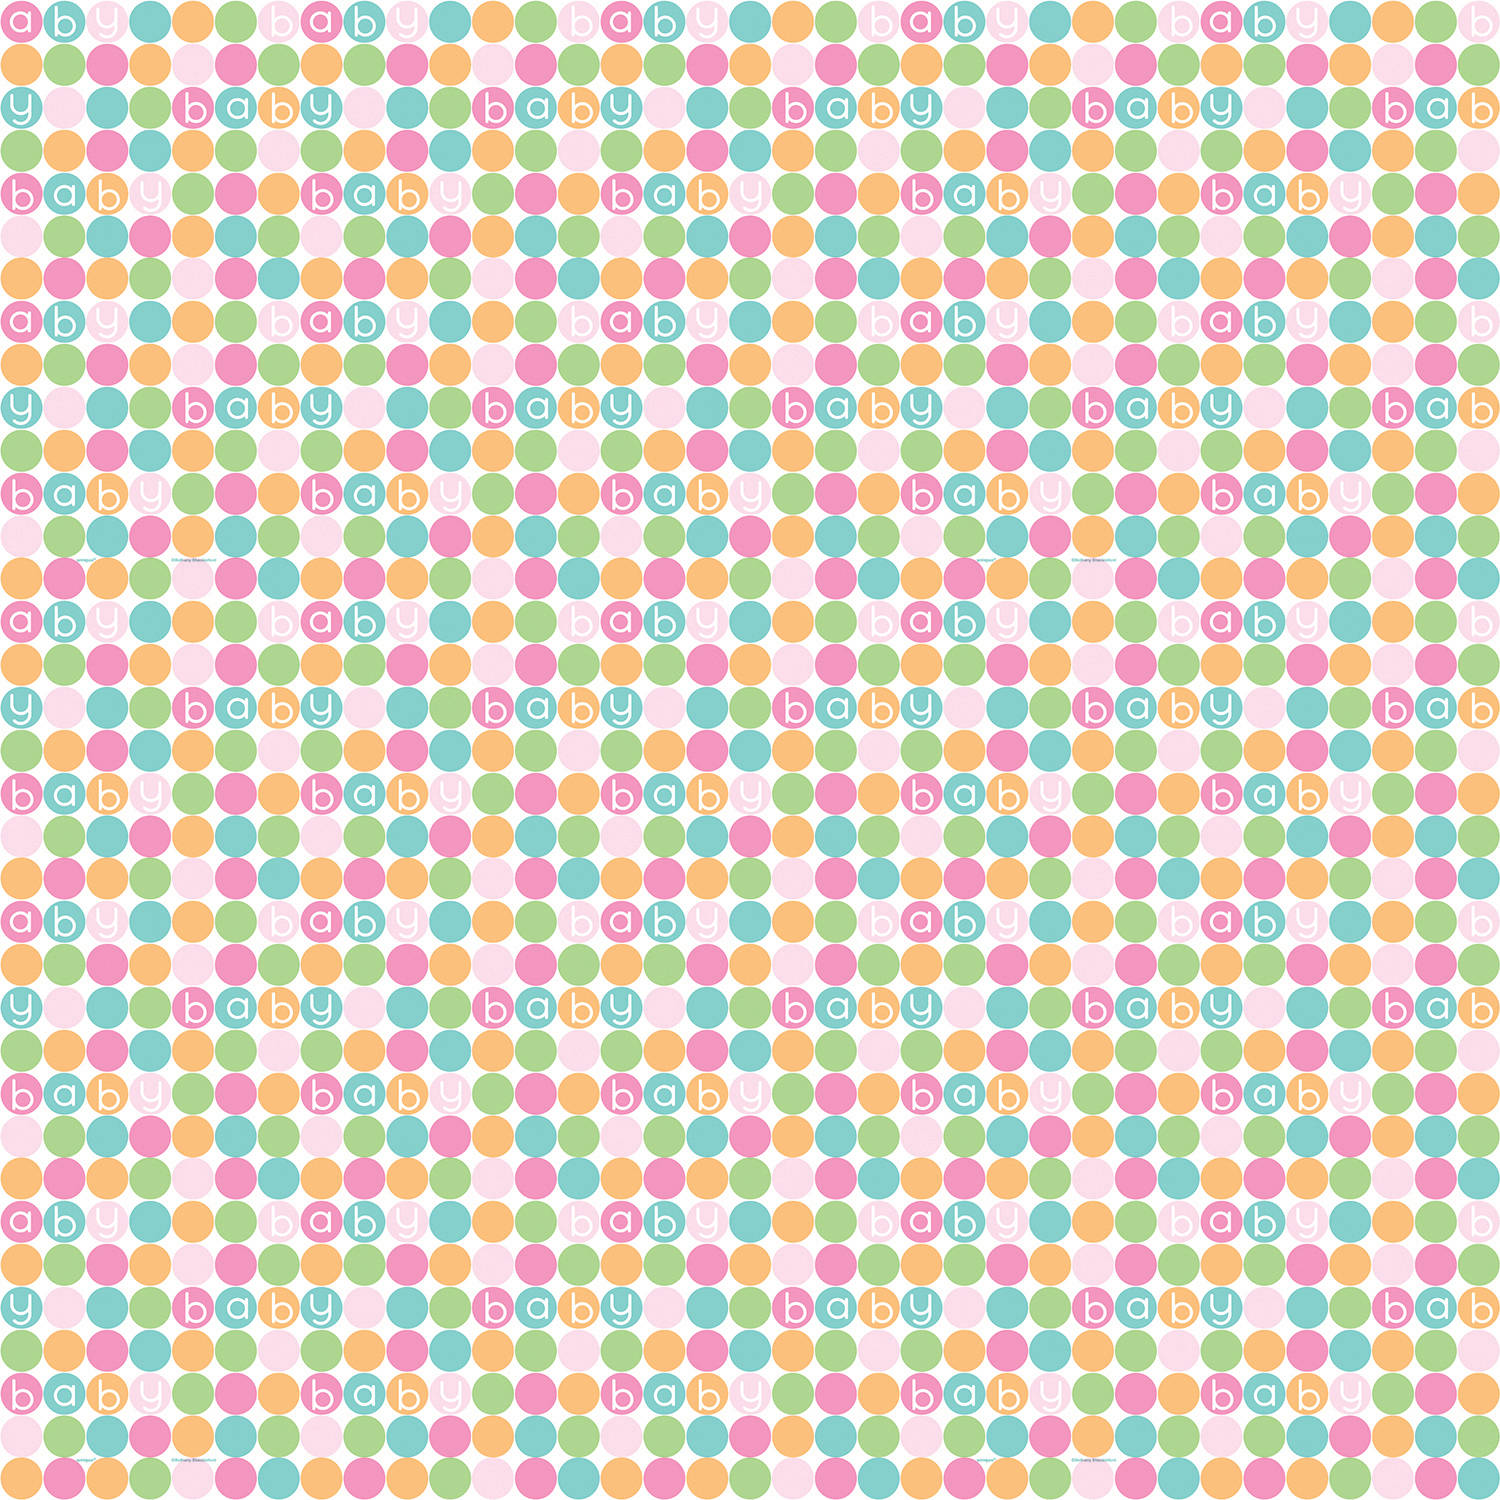 Pastel Baby Shower Wrapping Paper, 5 x 2.5 ft, 1ct